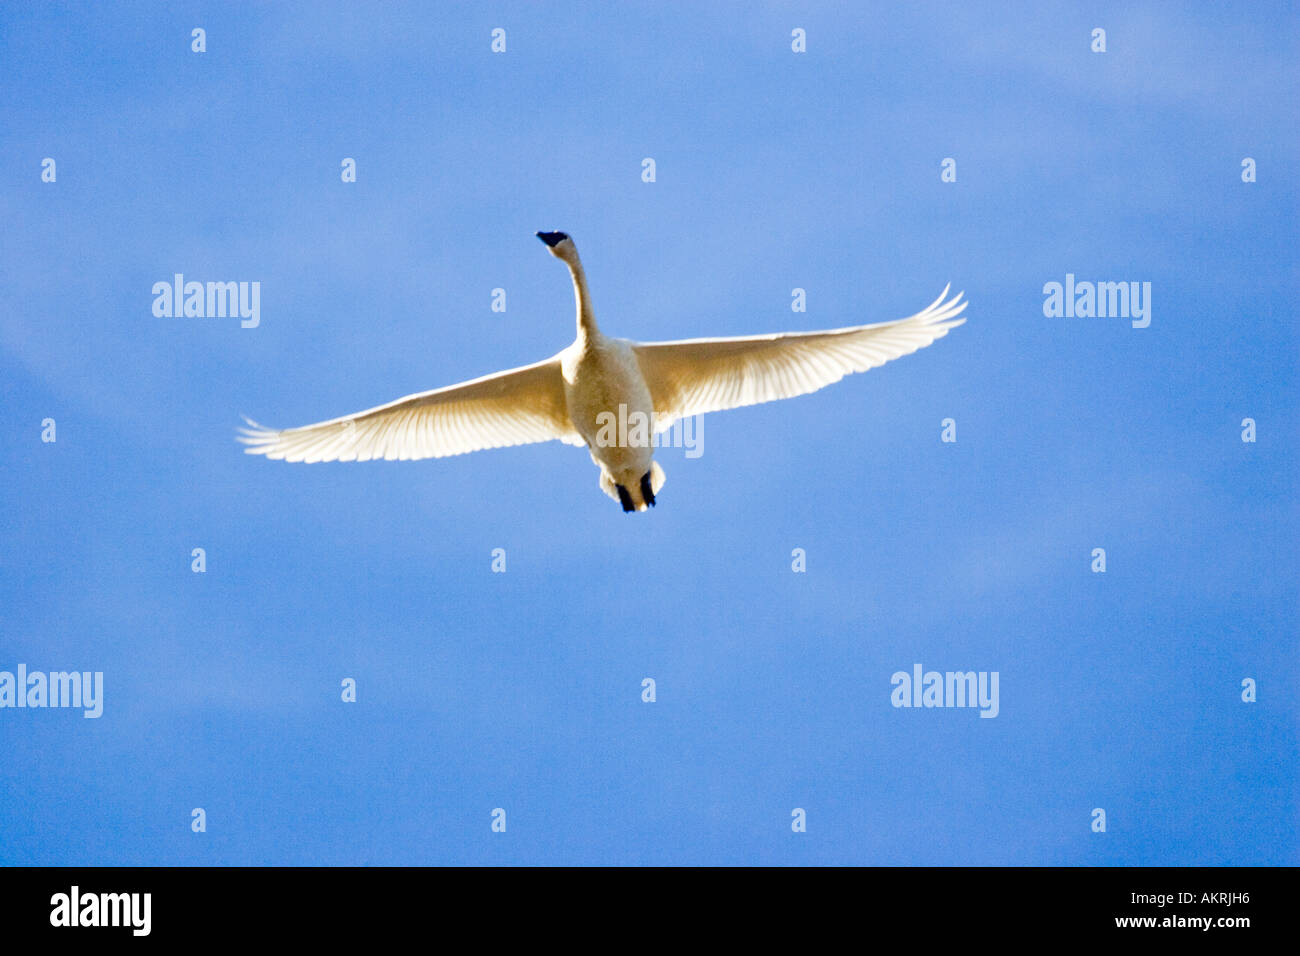 Trumpeter Swan (Cygnus buccinator) flying, Johnson DeBay Swan Reserve, Mount Vernon, Skagit Valley, Washington, USA - Stock Image